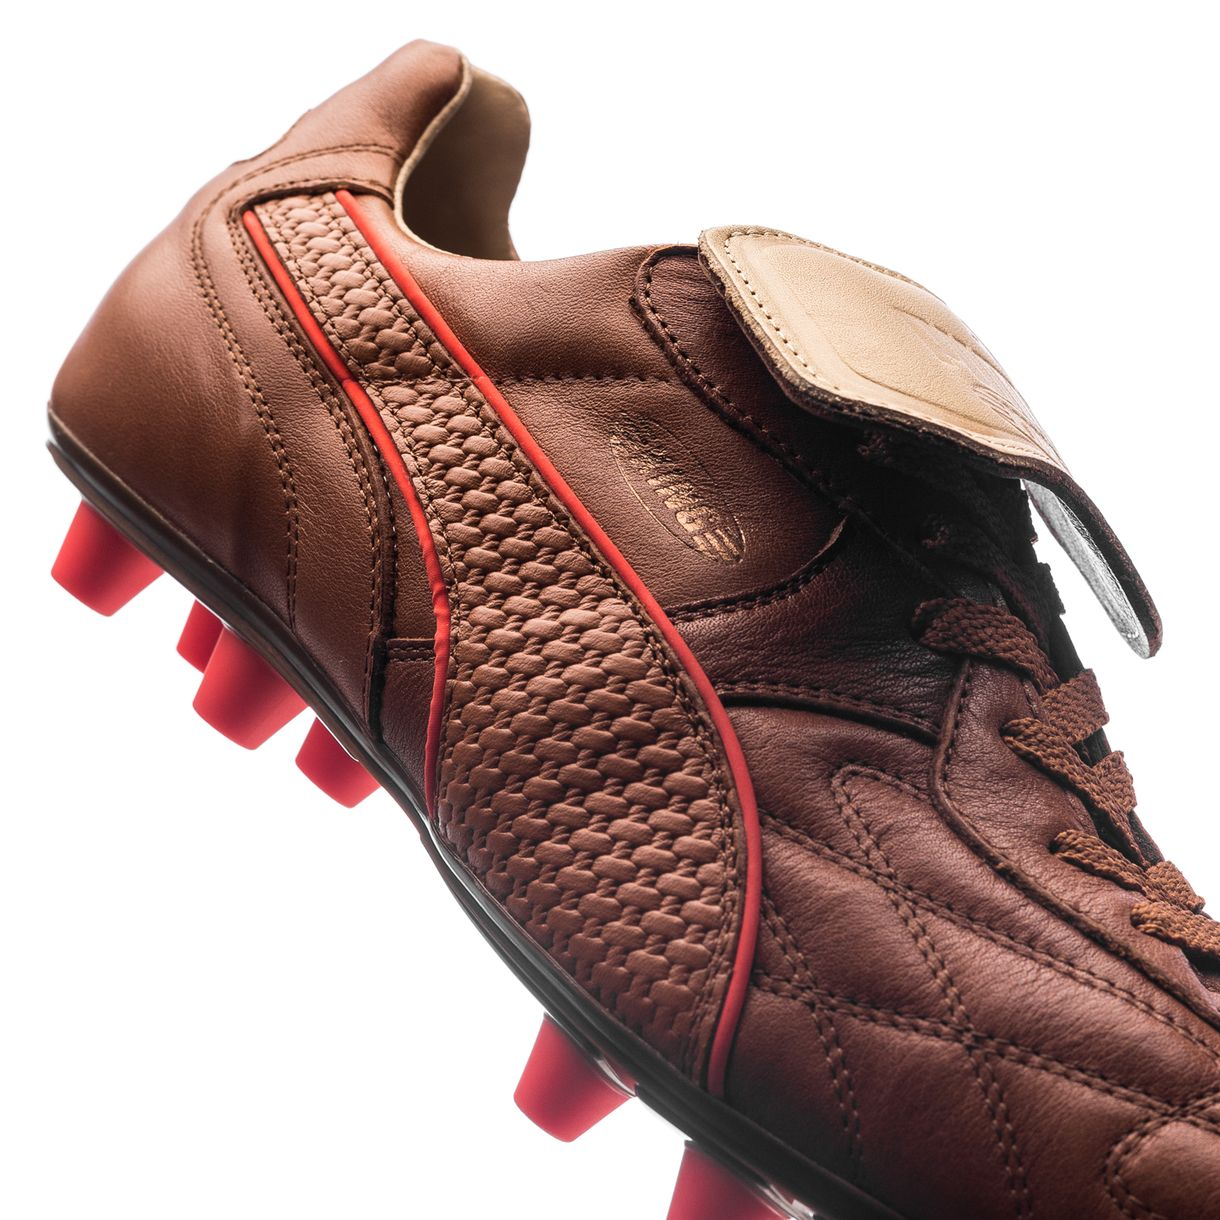 ... Click to enlarge image  puma king top mii naturale fg football boots brown k.jpg ... 29a561fbf